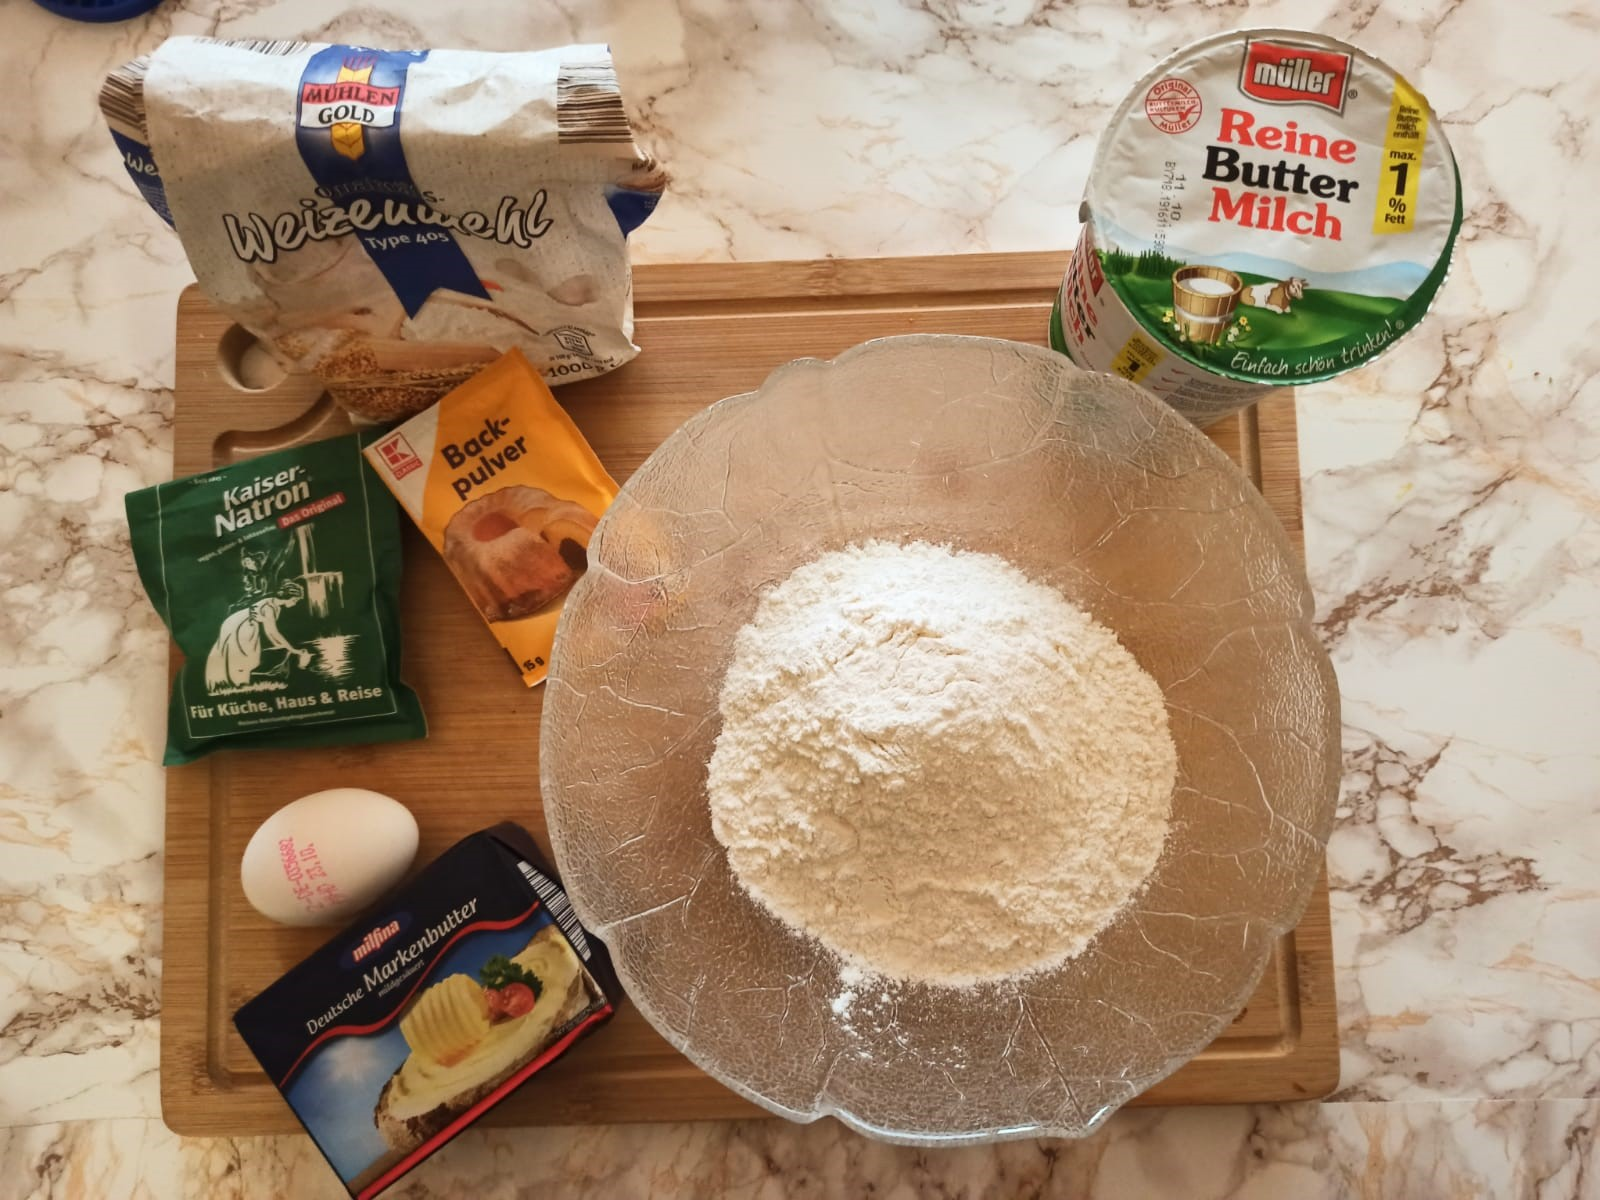 A bowl with flour standing on a table, with other baking ingredients around it.